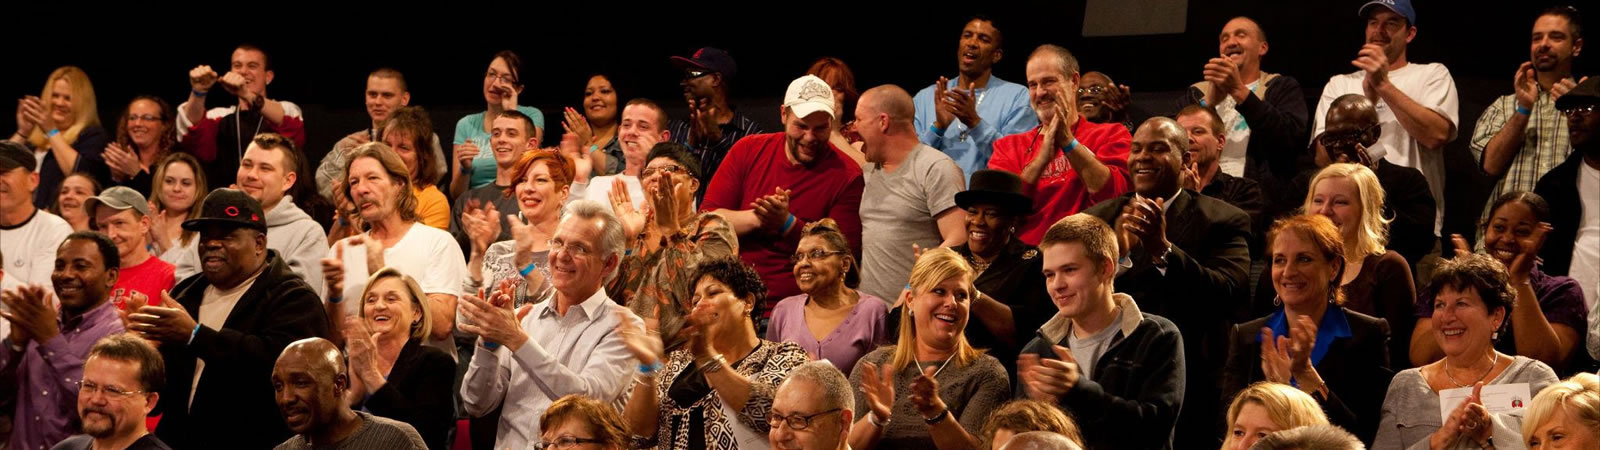 live-audience_1600x450